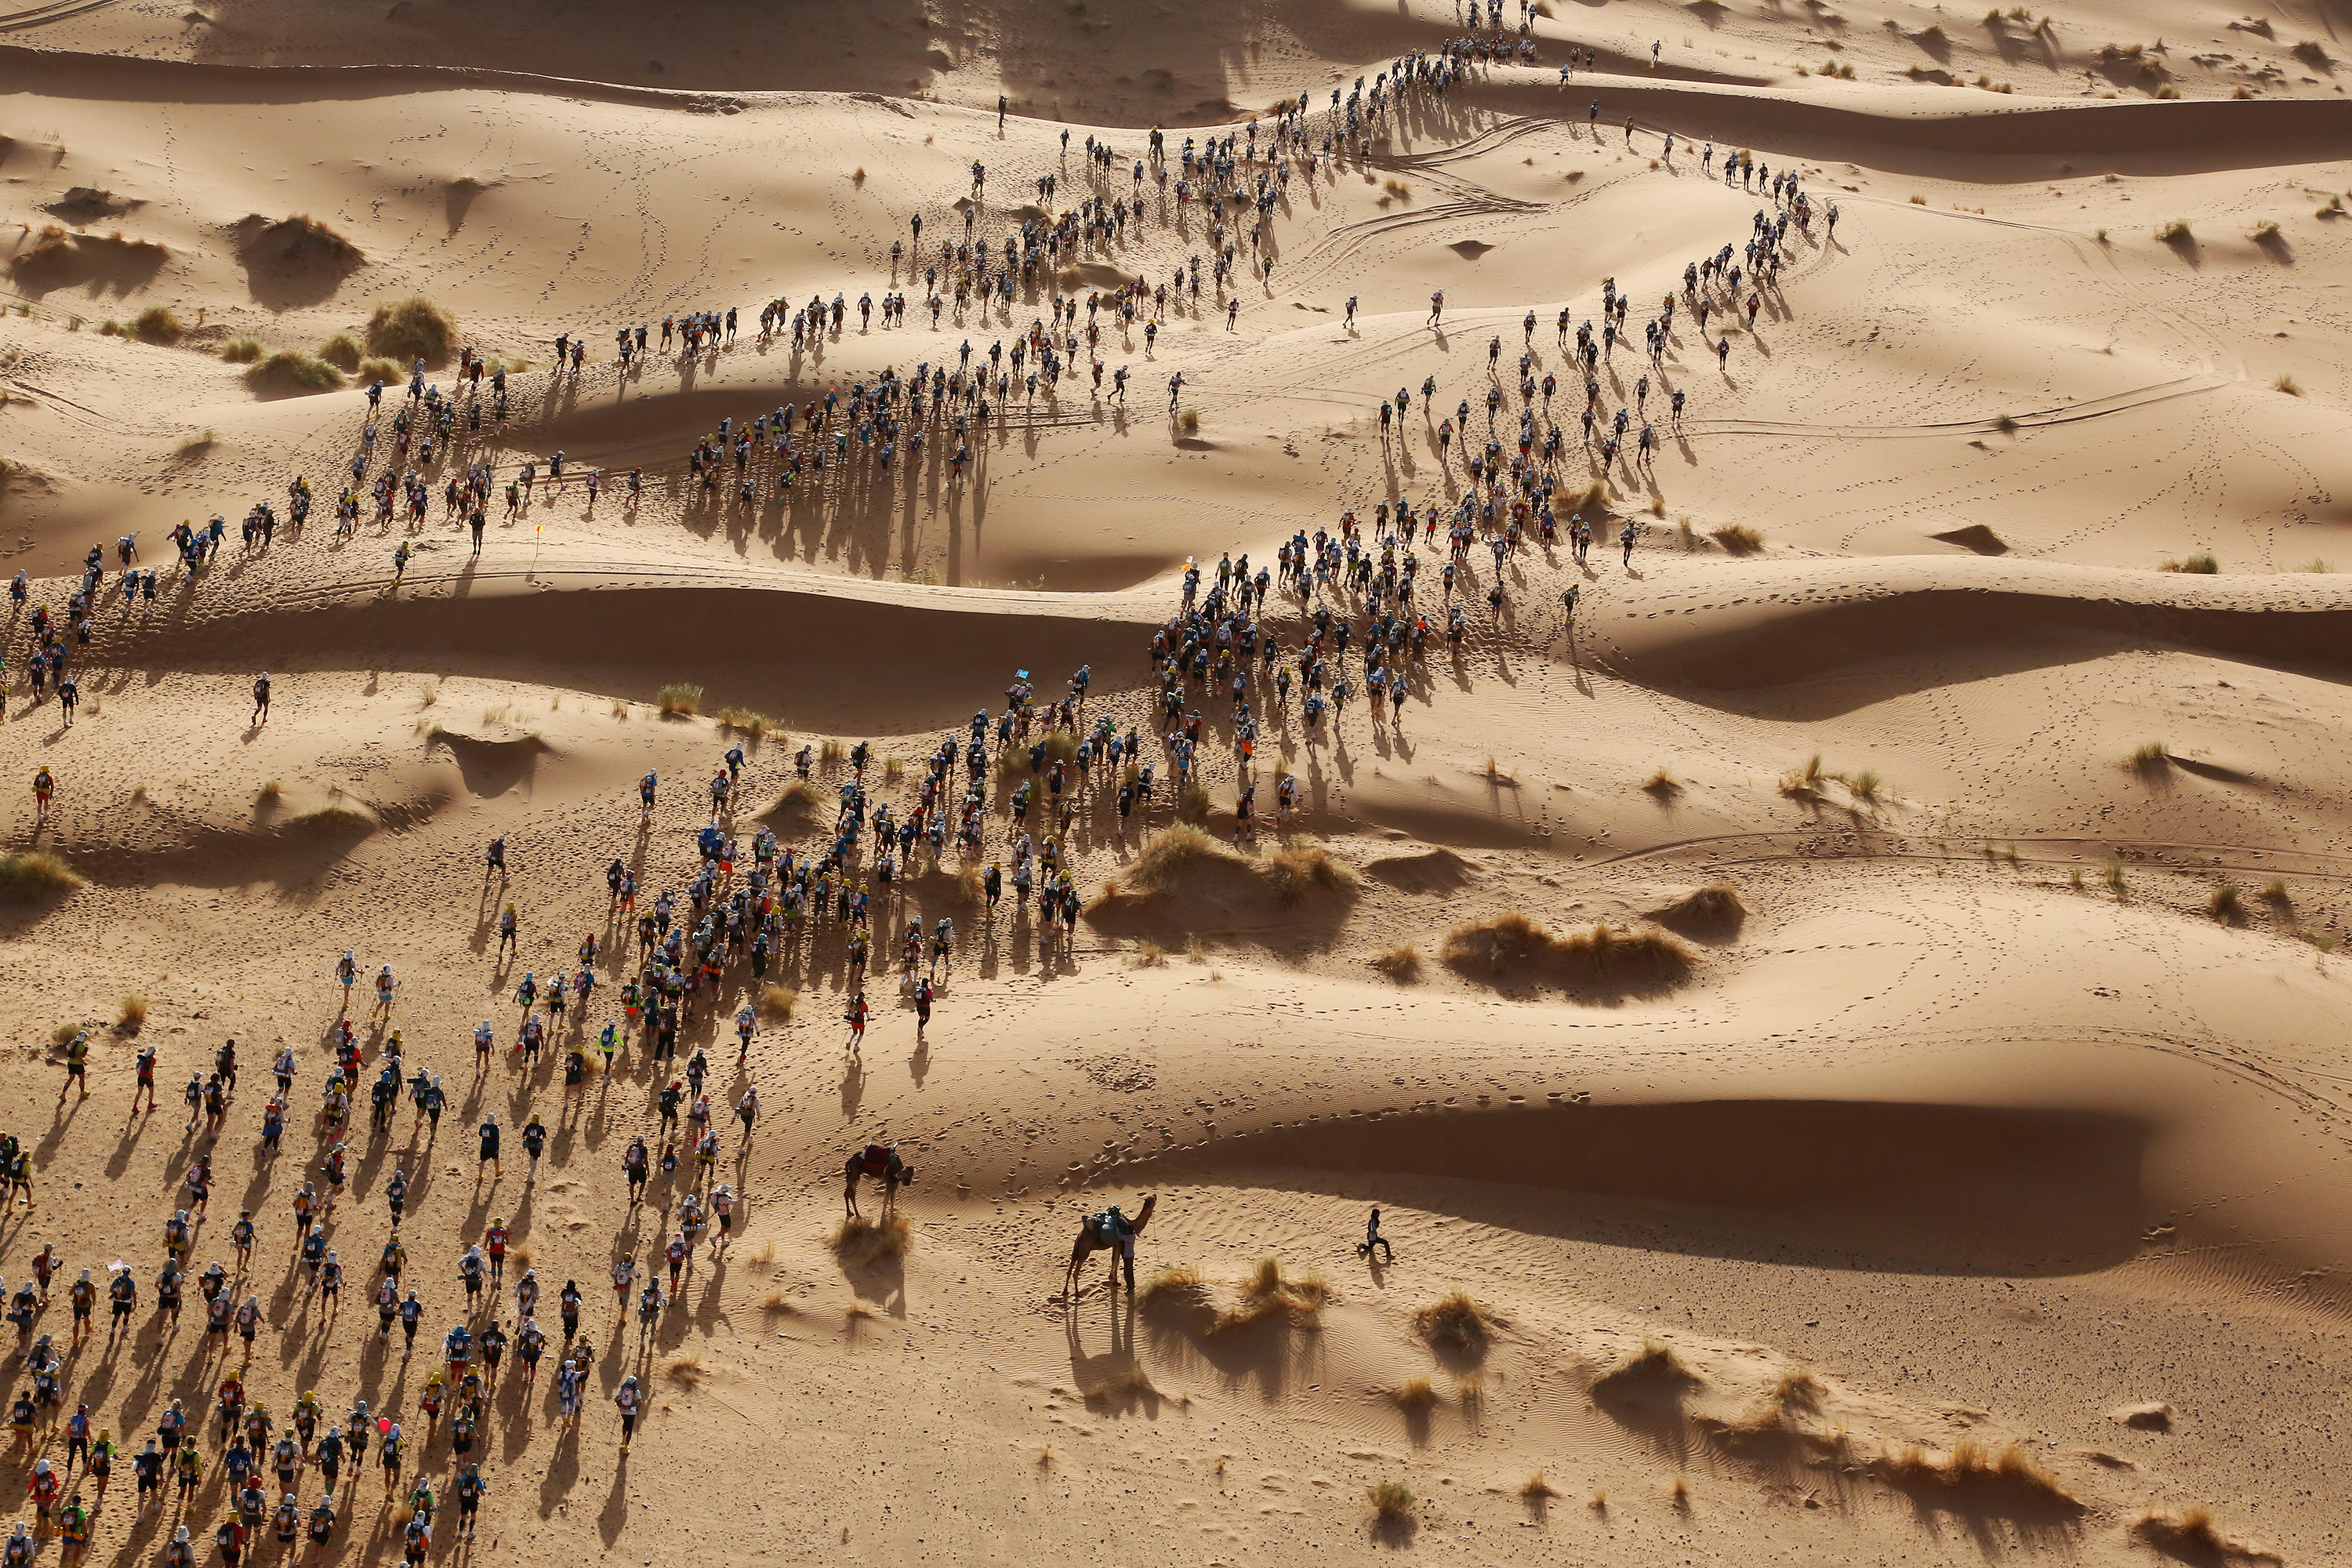 Participants set off on a timed stage of the Marathon des Sables, in the Sahara Desert in southern Morocco.